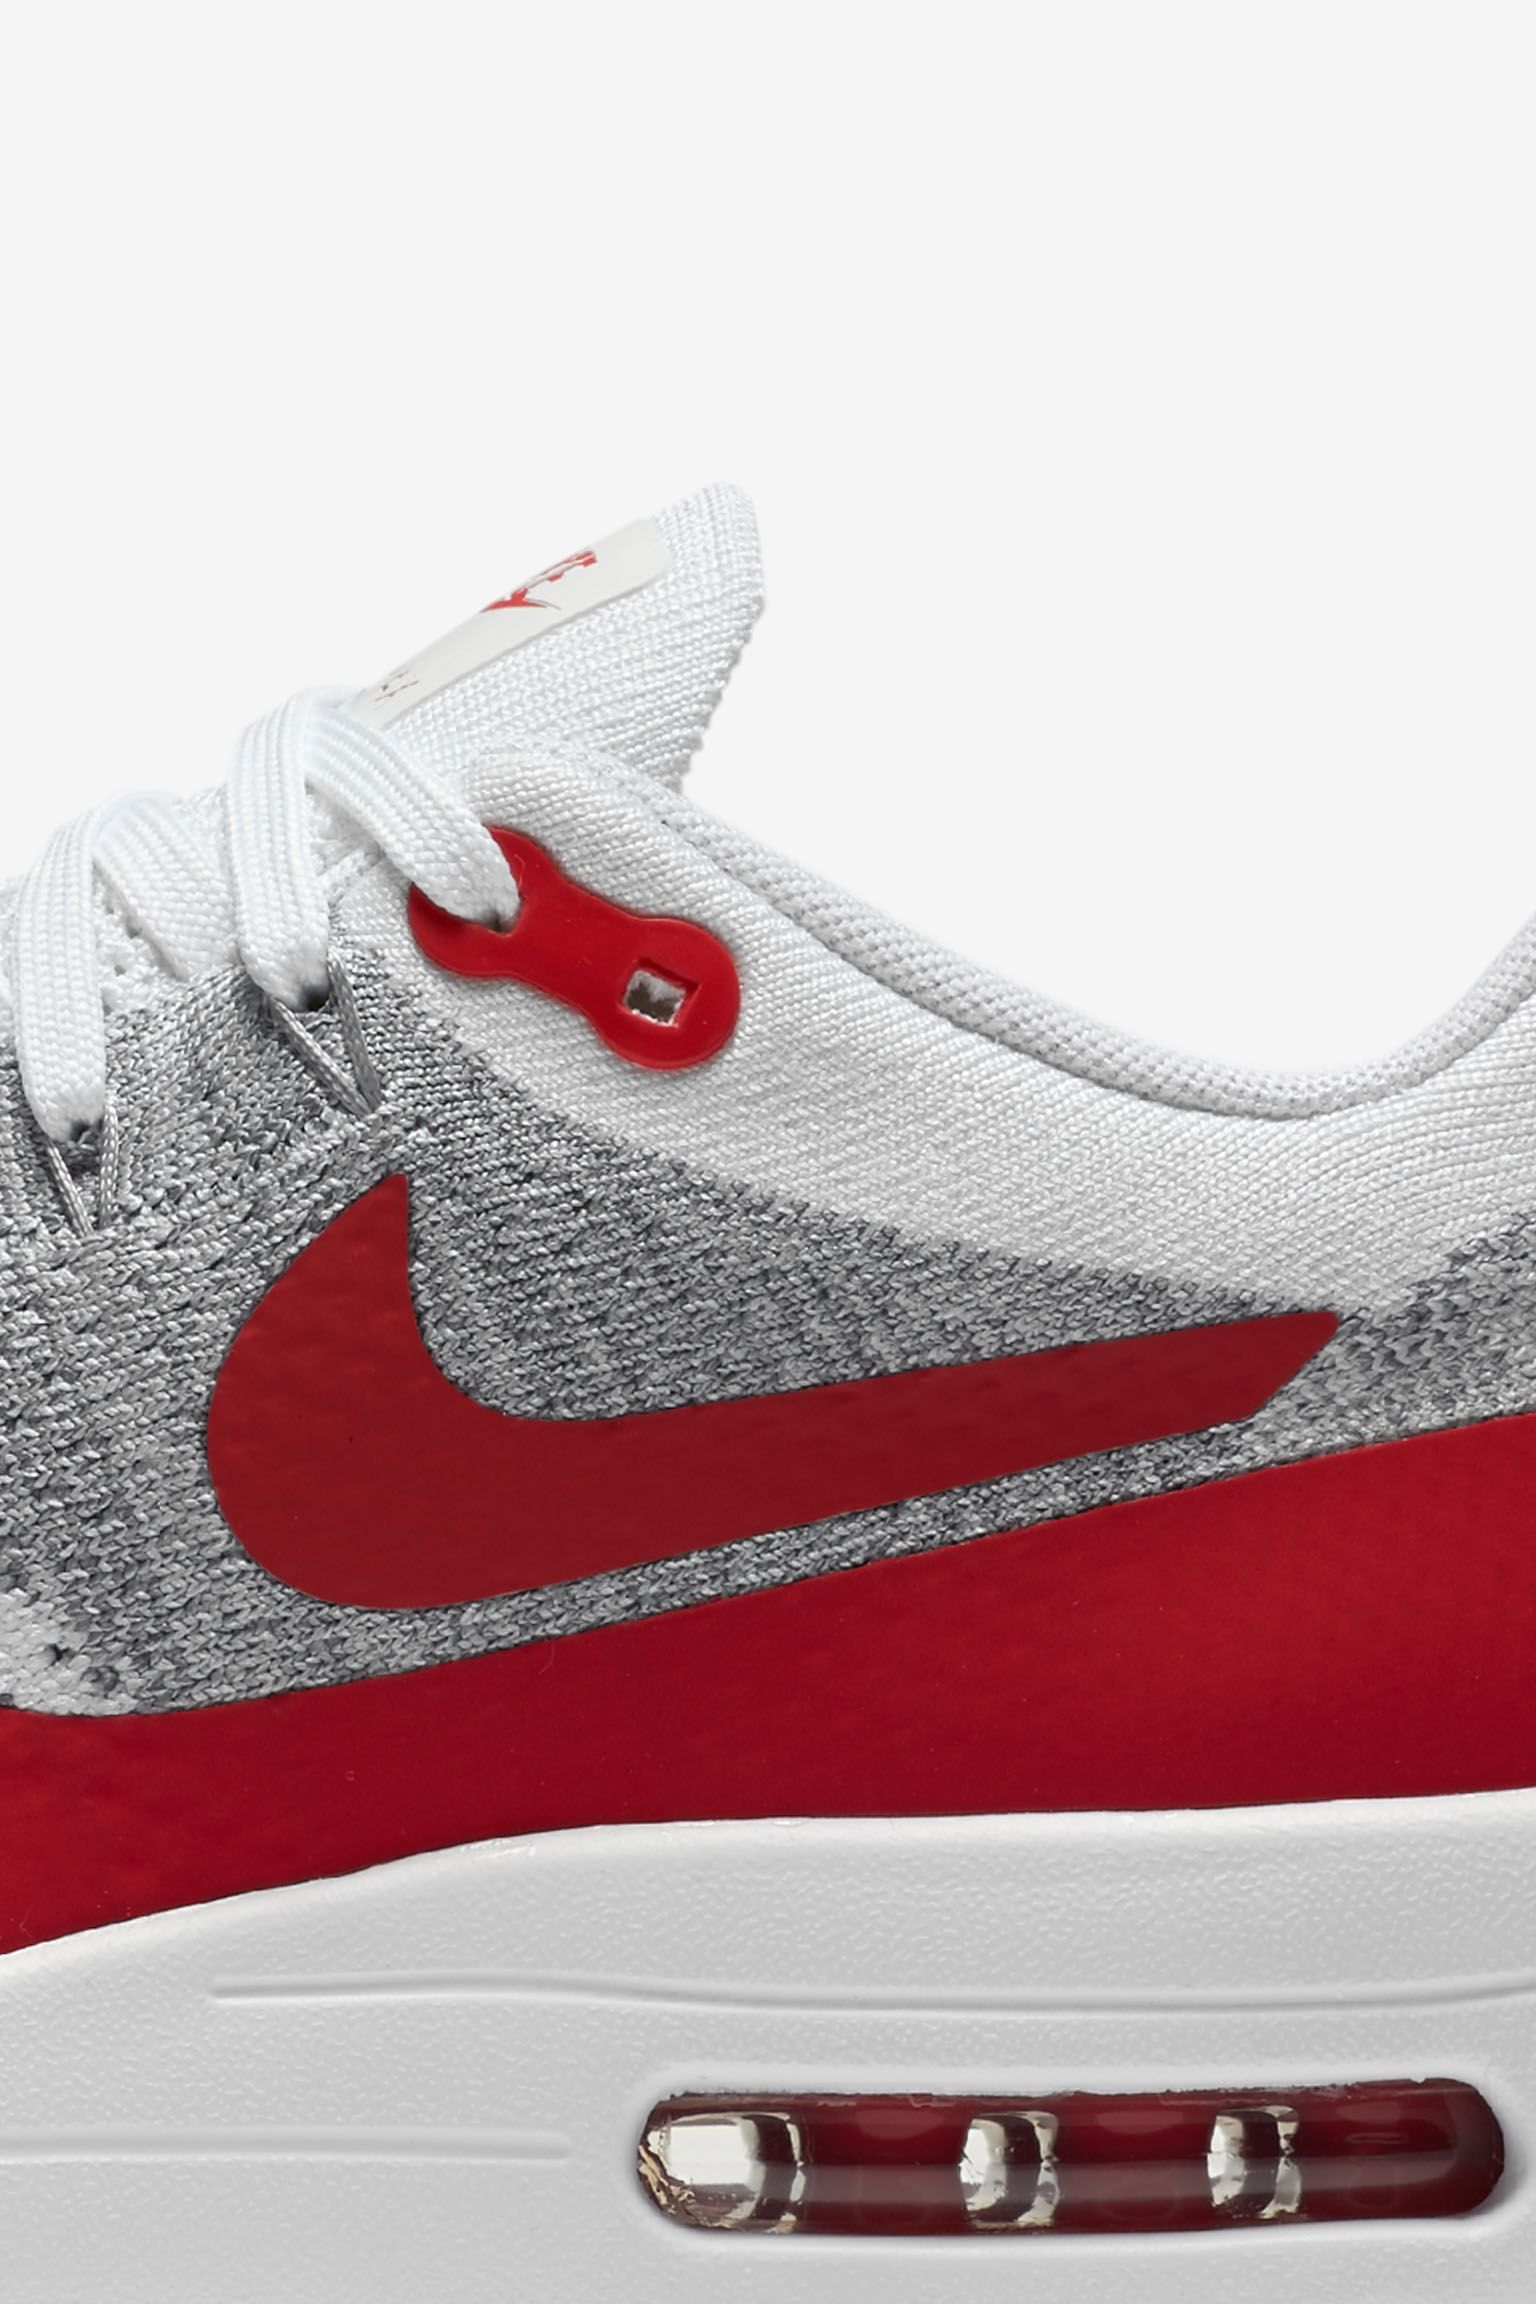 Nike Air Max 1 Ultra Flyknit 'Varsity Red'